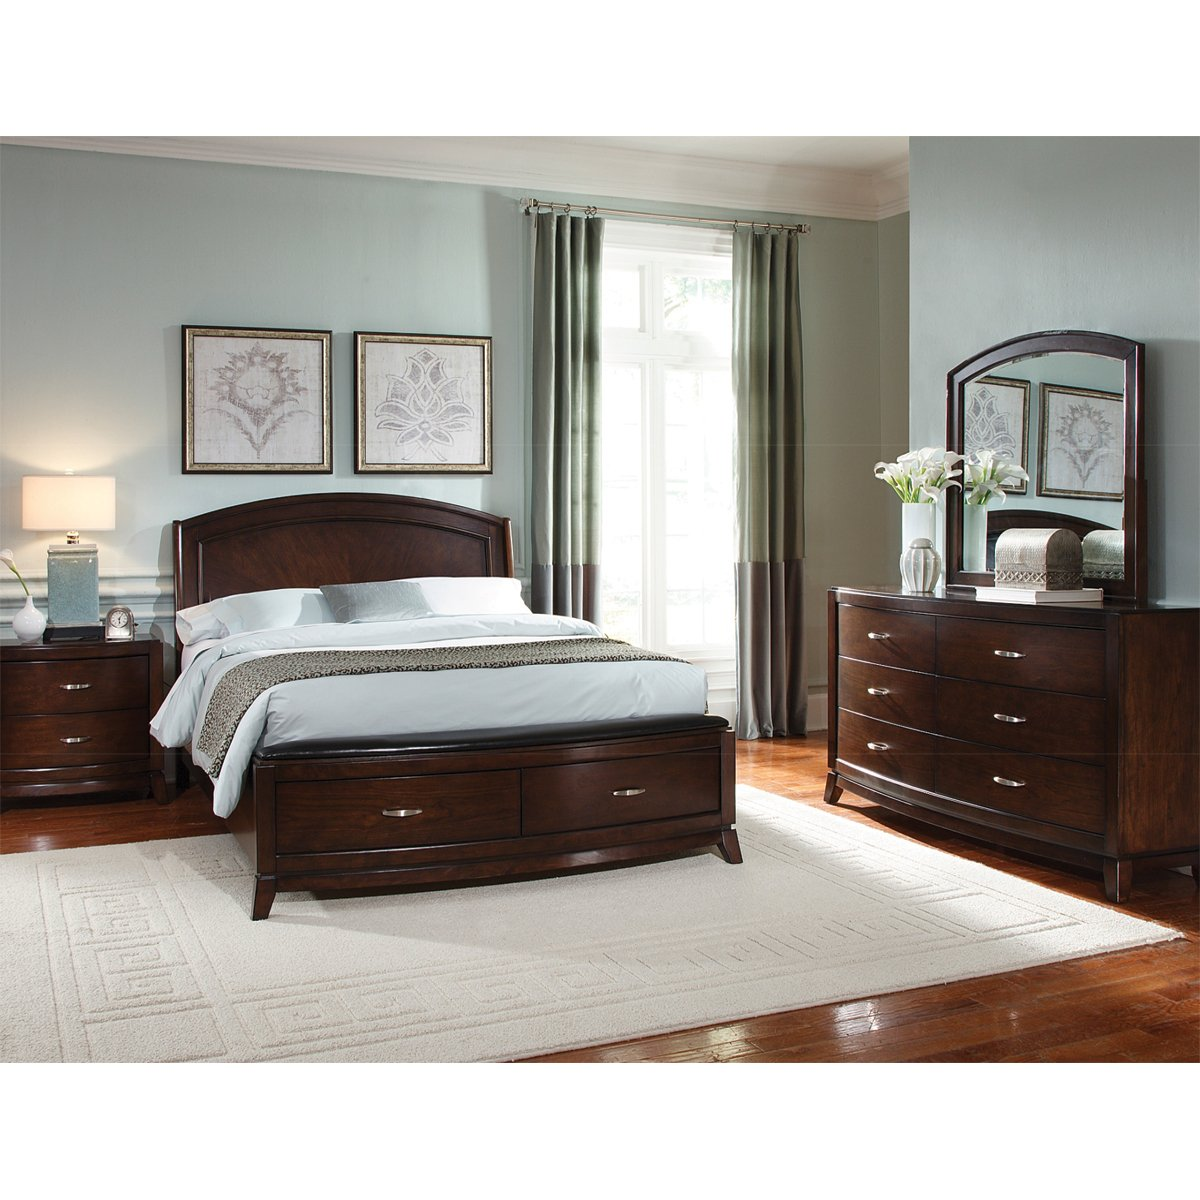 Bedroom Sets With Bed Design Room Nice design quotes House